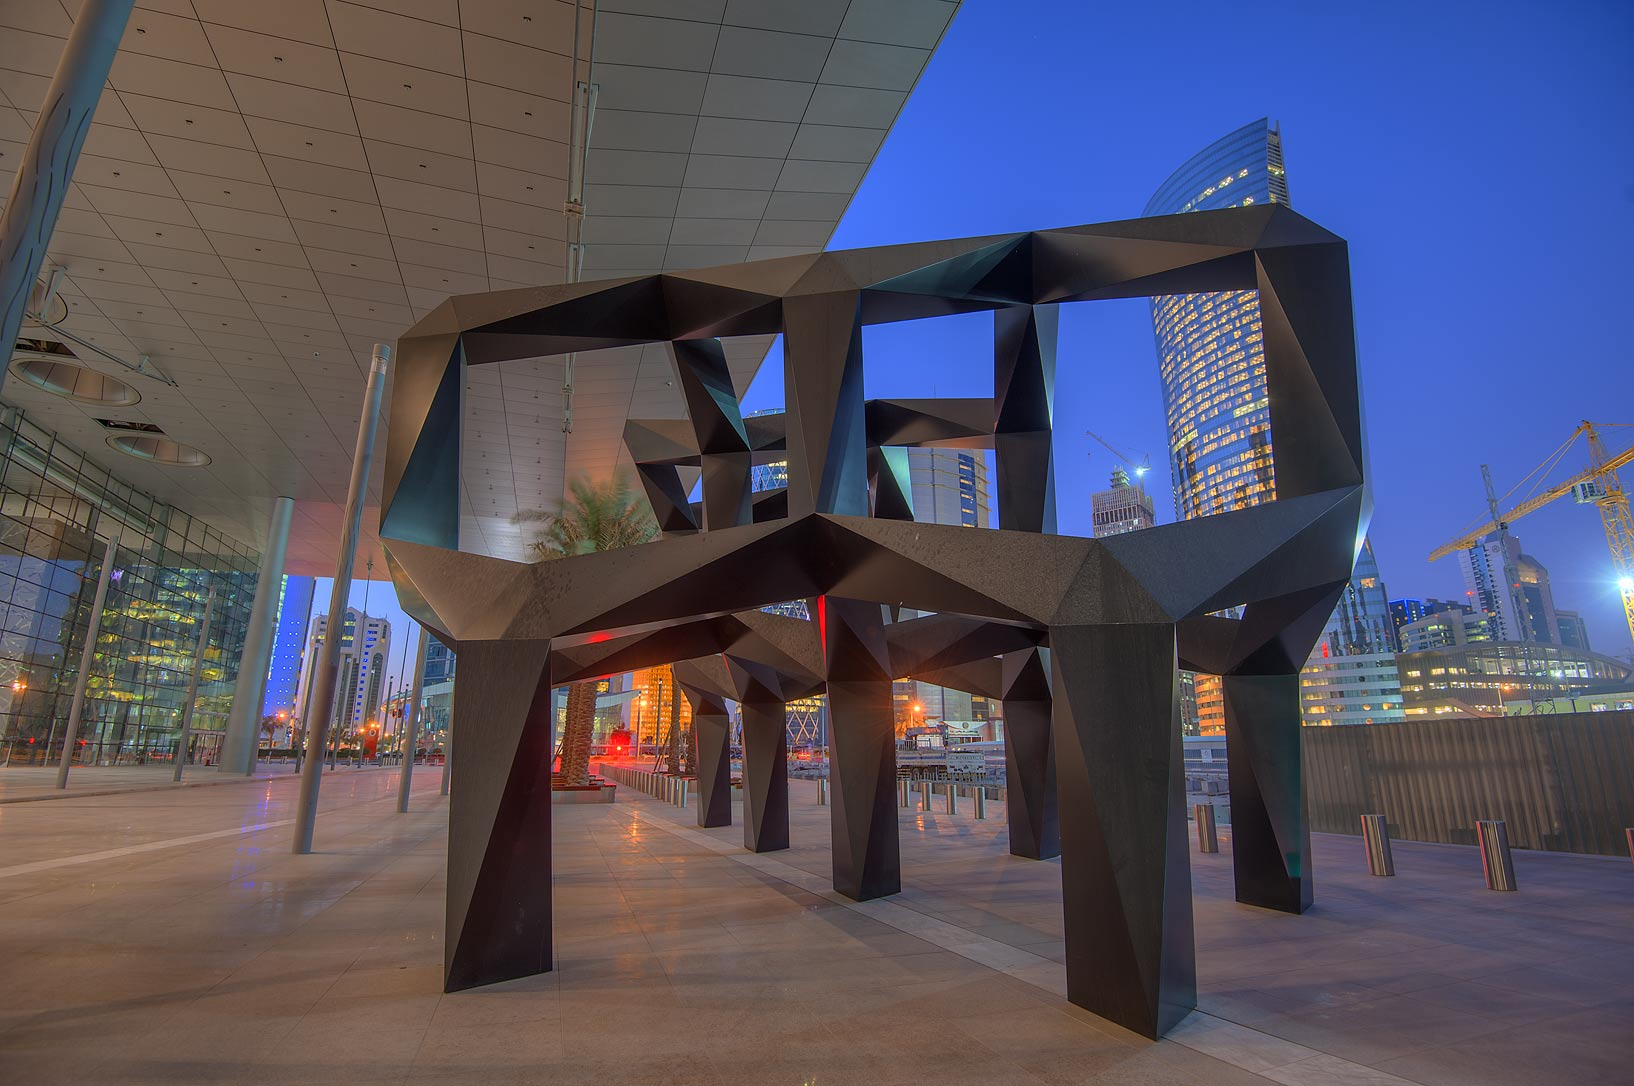 24-foot-high black geometric sculpture Smoke by...near City Center mall. Doha, Qatar